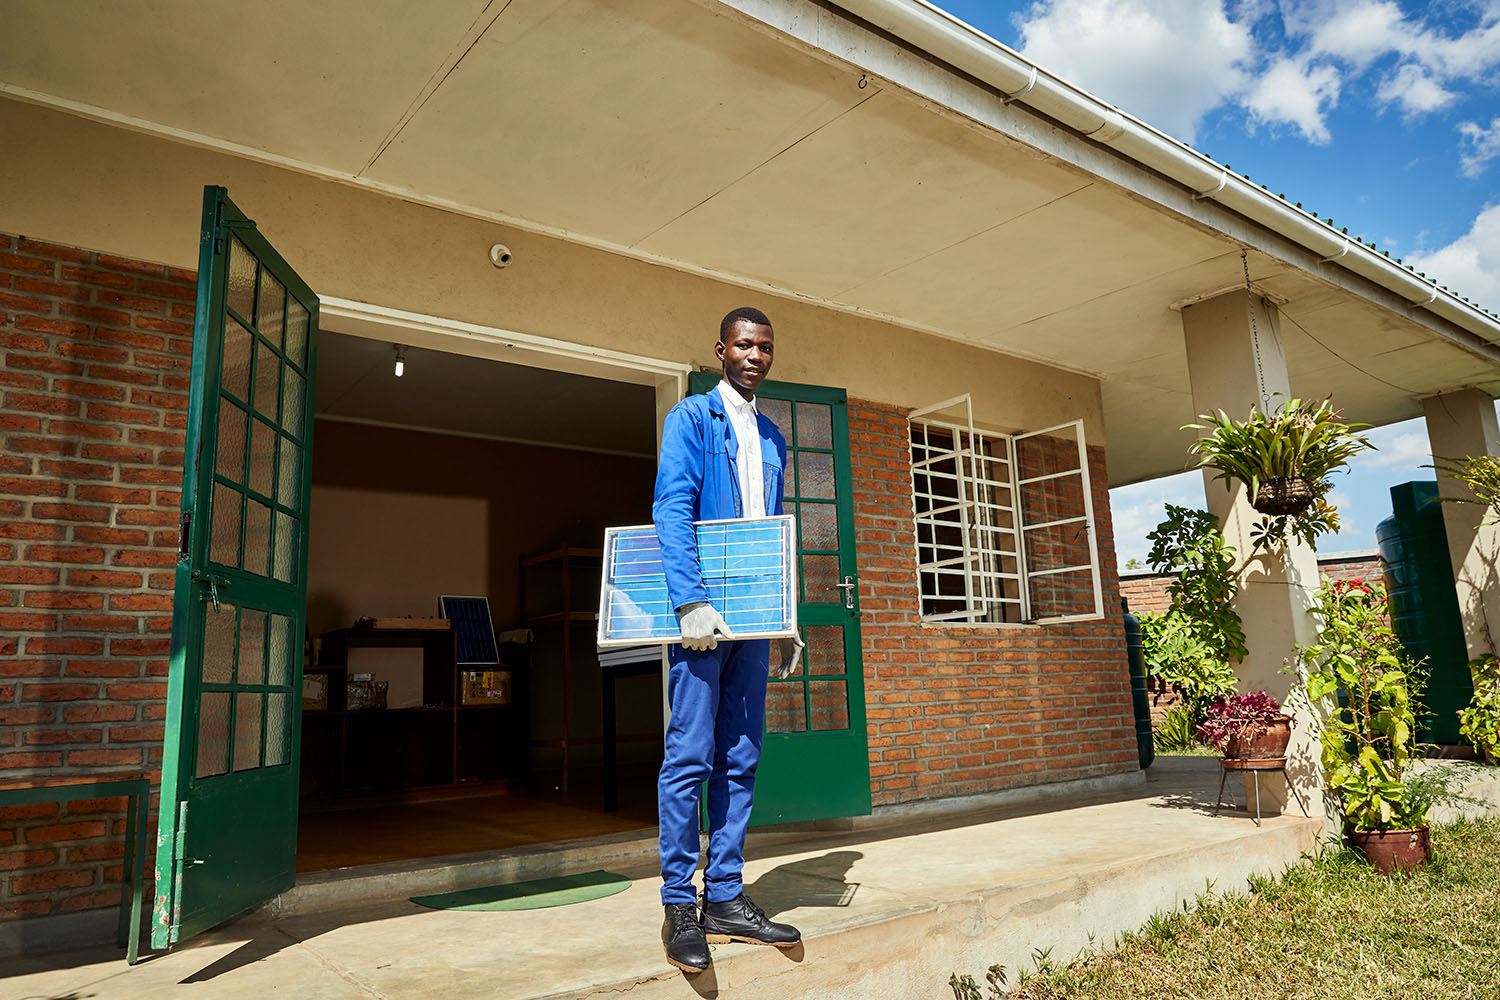 Thomas, a student at Green Malata, an entrepreneurial village, pose with a solar panel, Luchenza, southern Malawi, 2017.  Thomas and his fellow students are part of Green Malata's Renewable Energy course, during which they learn about a range of different green alternatives to on-grid electricity generation.